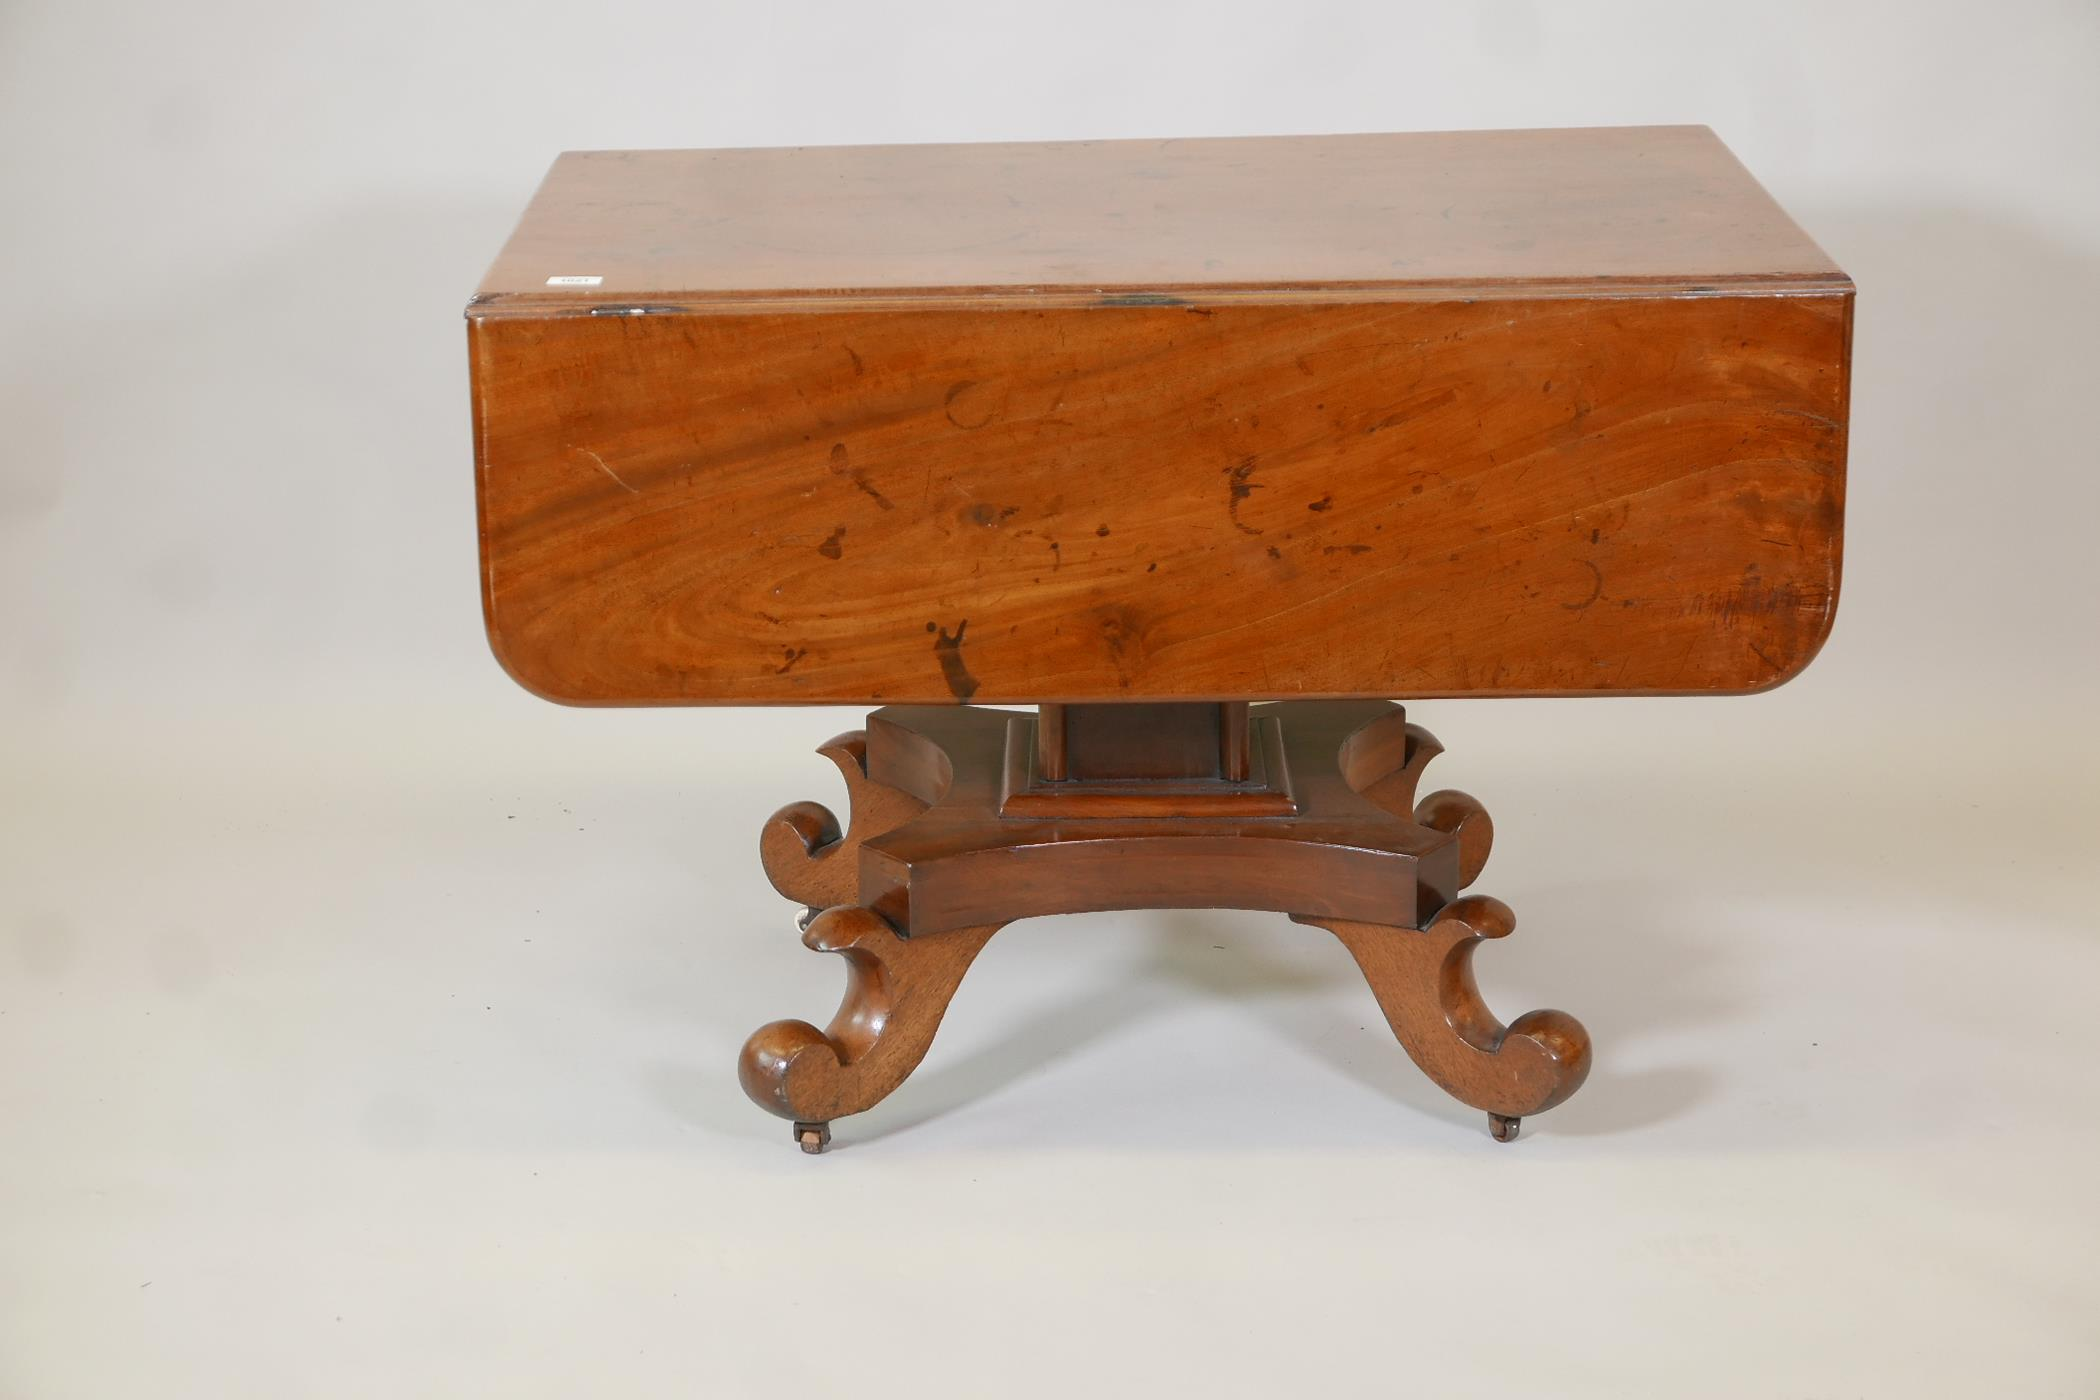 A C19th Continental mahogany sofa table with single end frieze drawer, raised on a square column and - Image 3 of 3